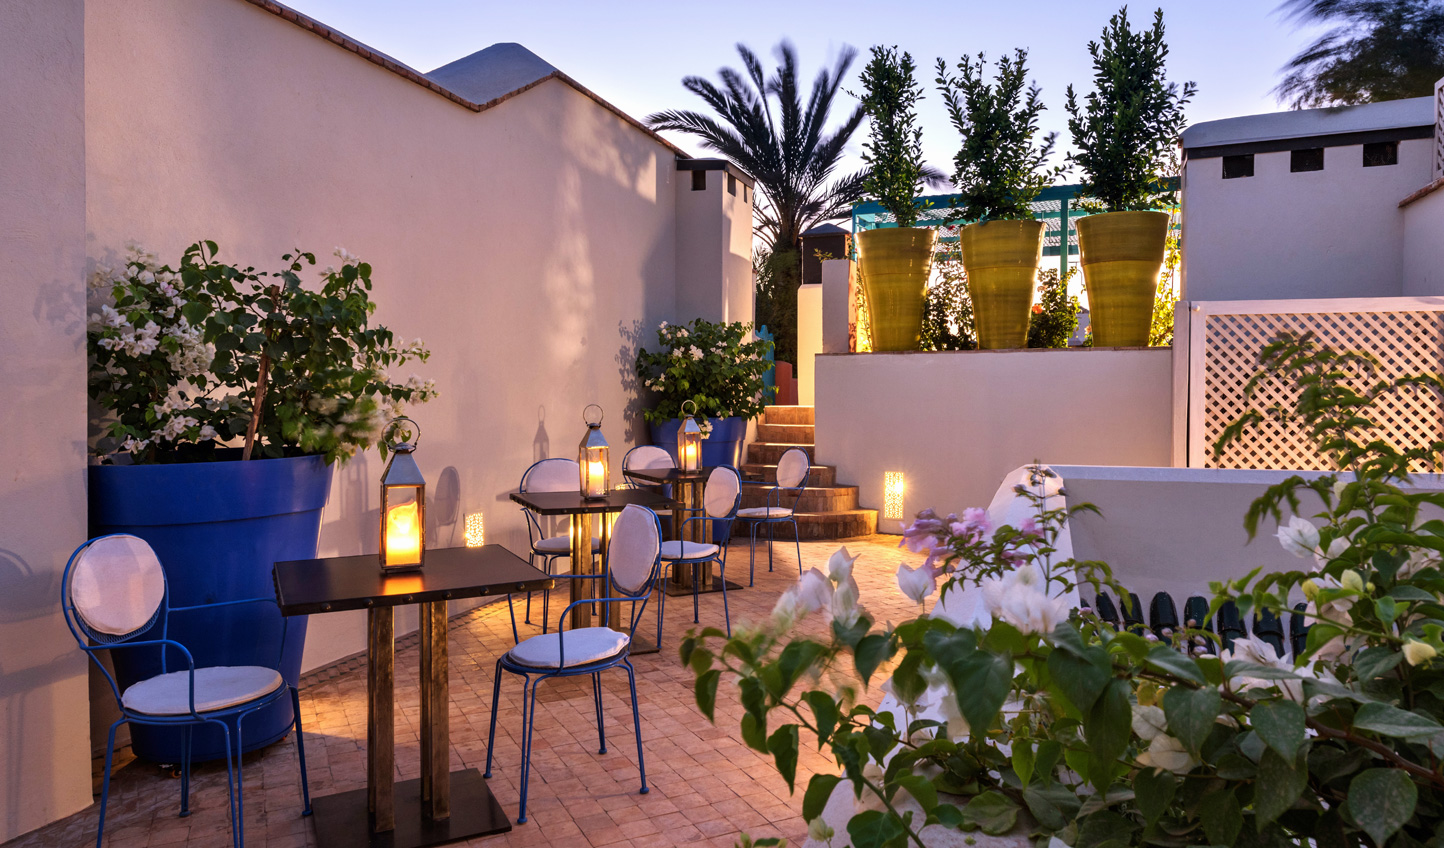 A tranquil oasis hidden within the medina awaits you at Riad Farnatchi